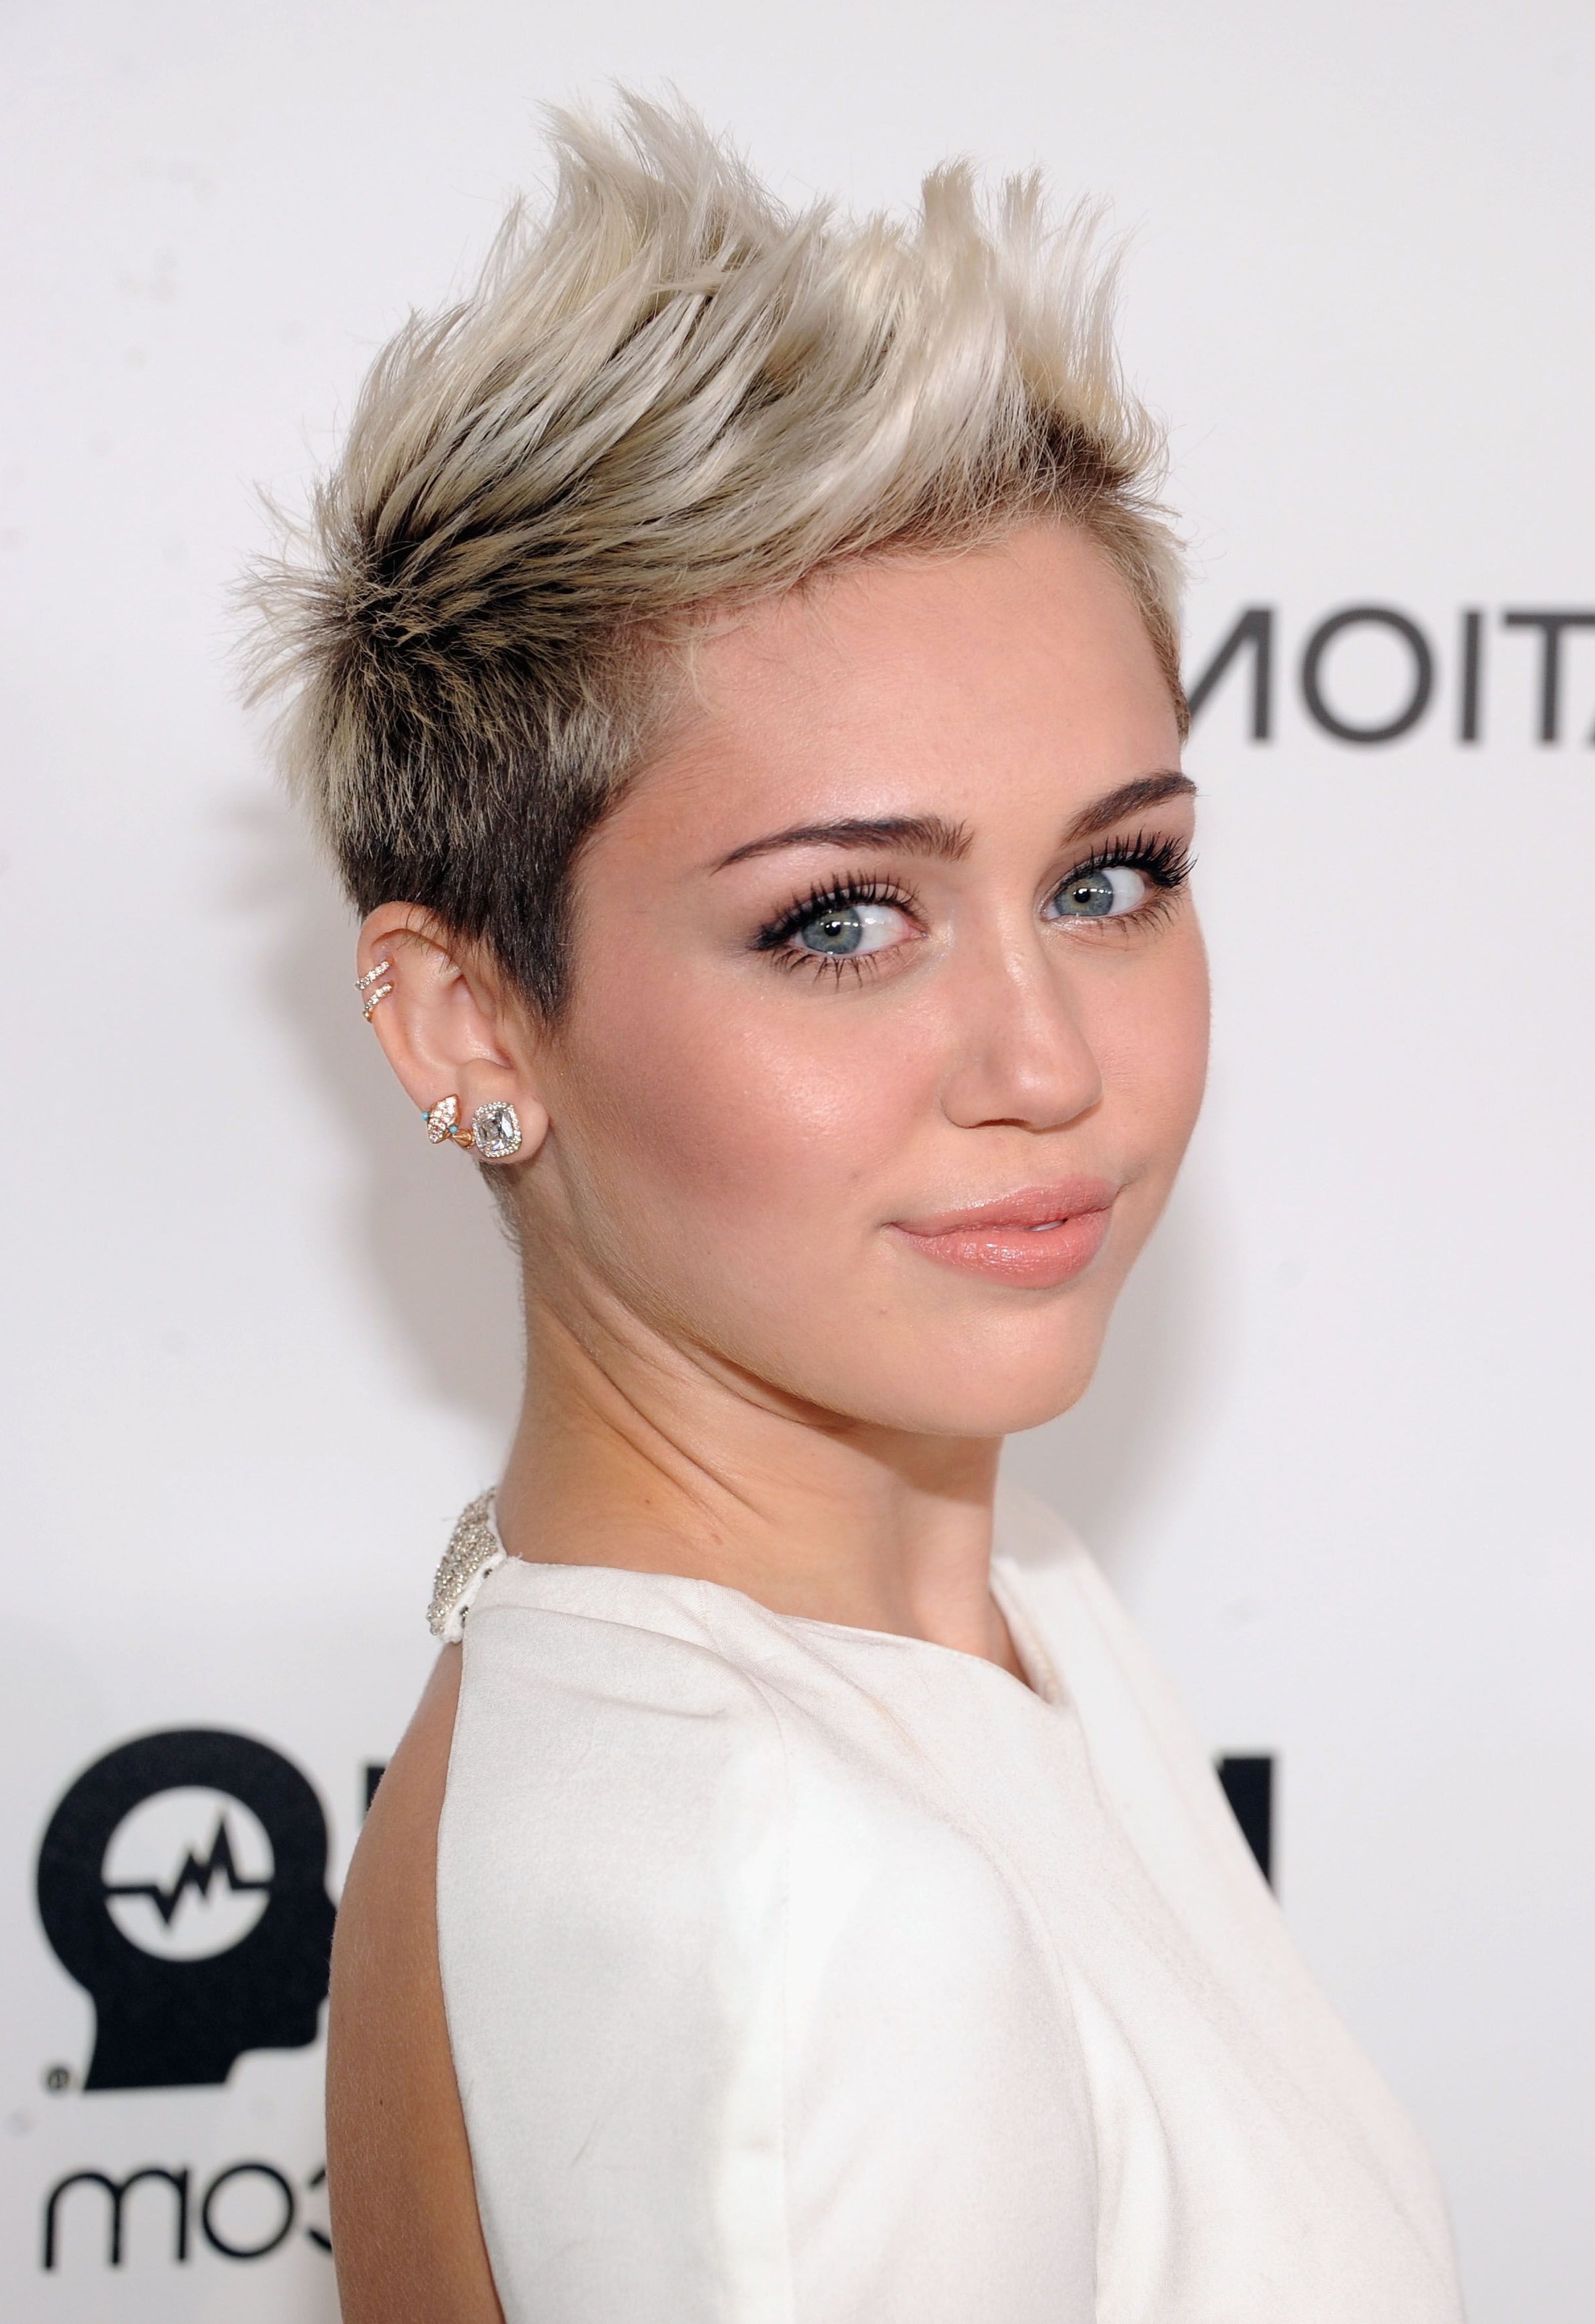 Fashionable Bleach Blonde Pixie Hairstyles Regarding 53 Best Pixie Cut Hairstyle Ideas 2018 – Cute Celebrity Pixie Haircuts (View 5 of 20)